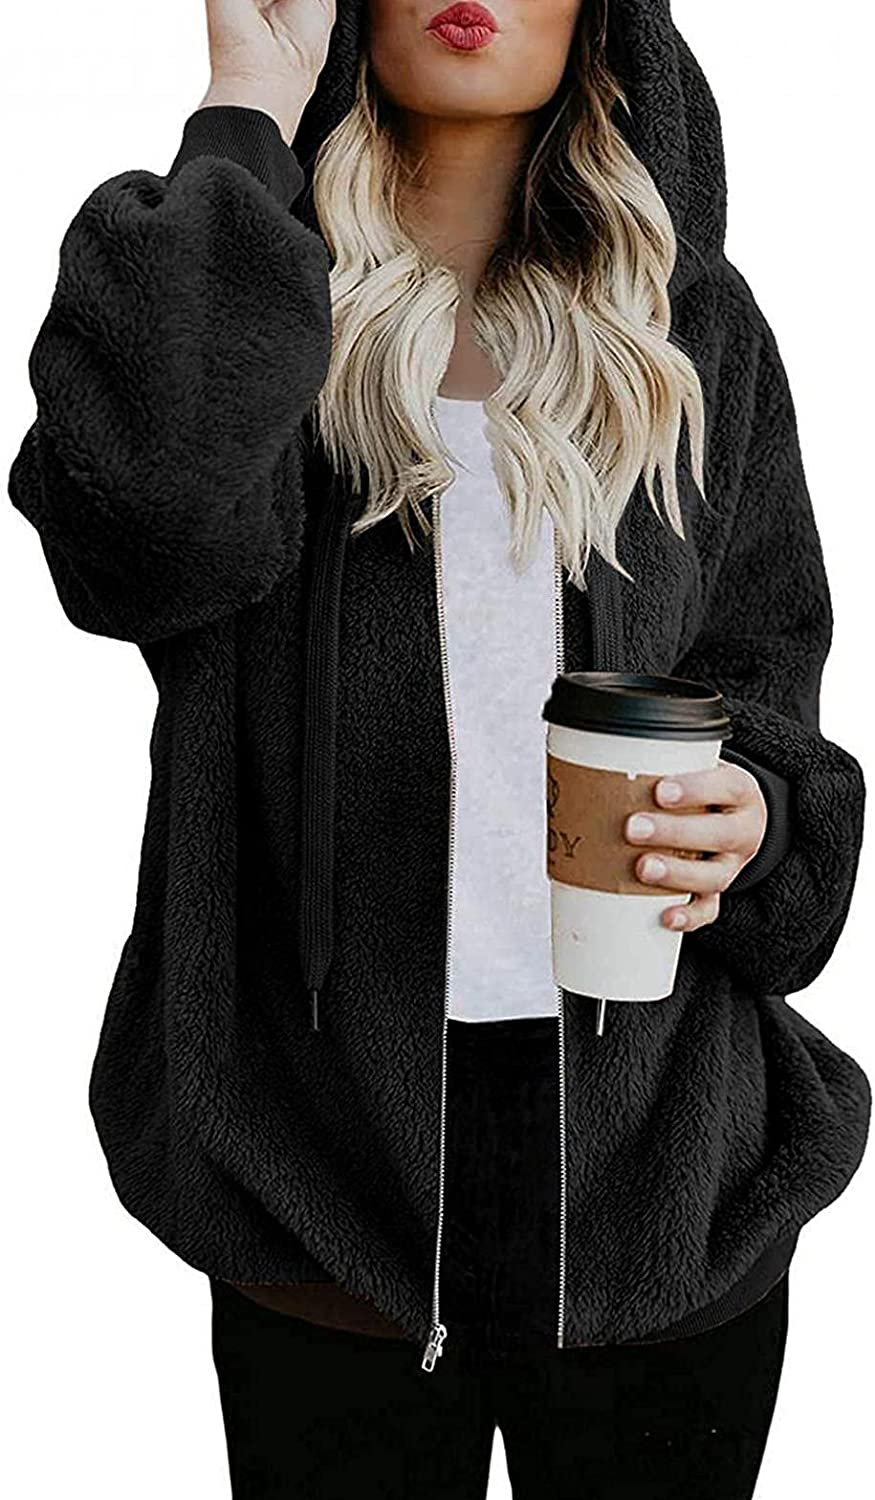 Gibobby Hoodies for Women Pullover Oversized Cozy Fuzzy Sweatshirts Zipper Hooded Casual Drawstring Outwear with Pockets